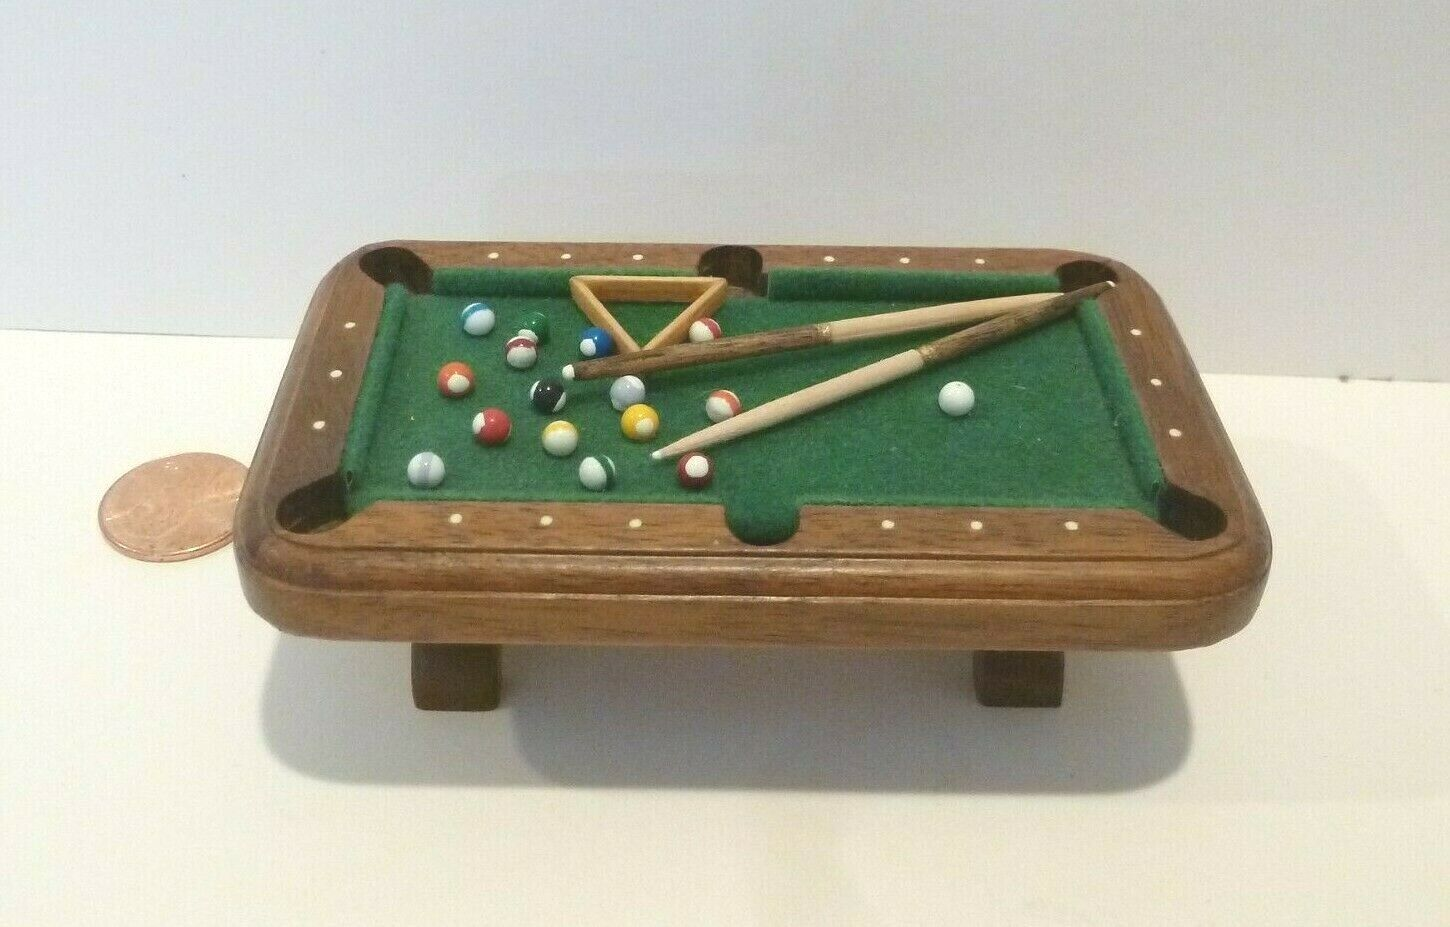 damen & JIM JOHNSON HANDMADE 1 2  SCALE MINIATURE POOL TABLE SIGNED DATED 1992